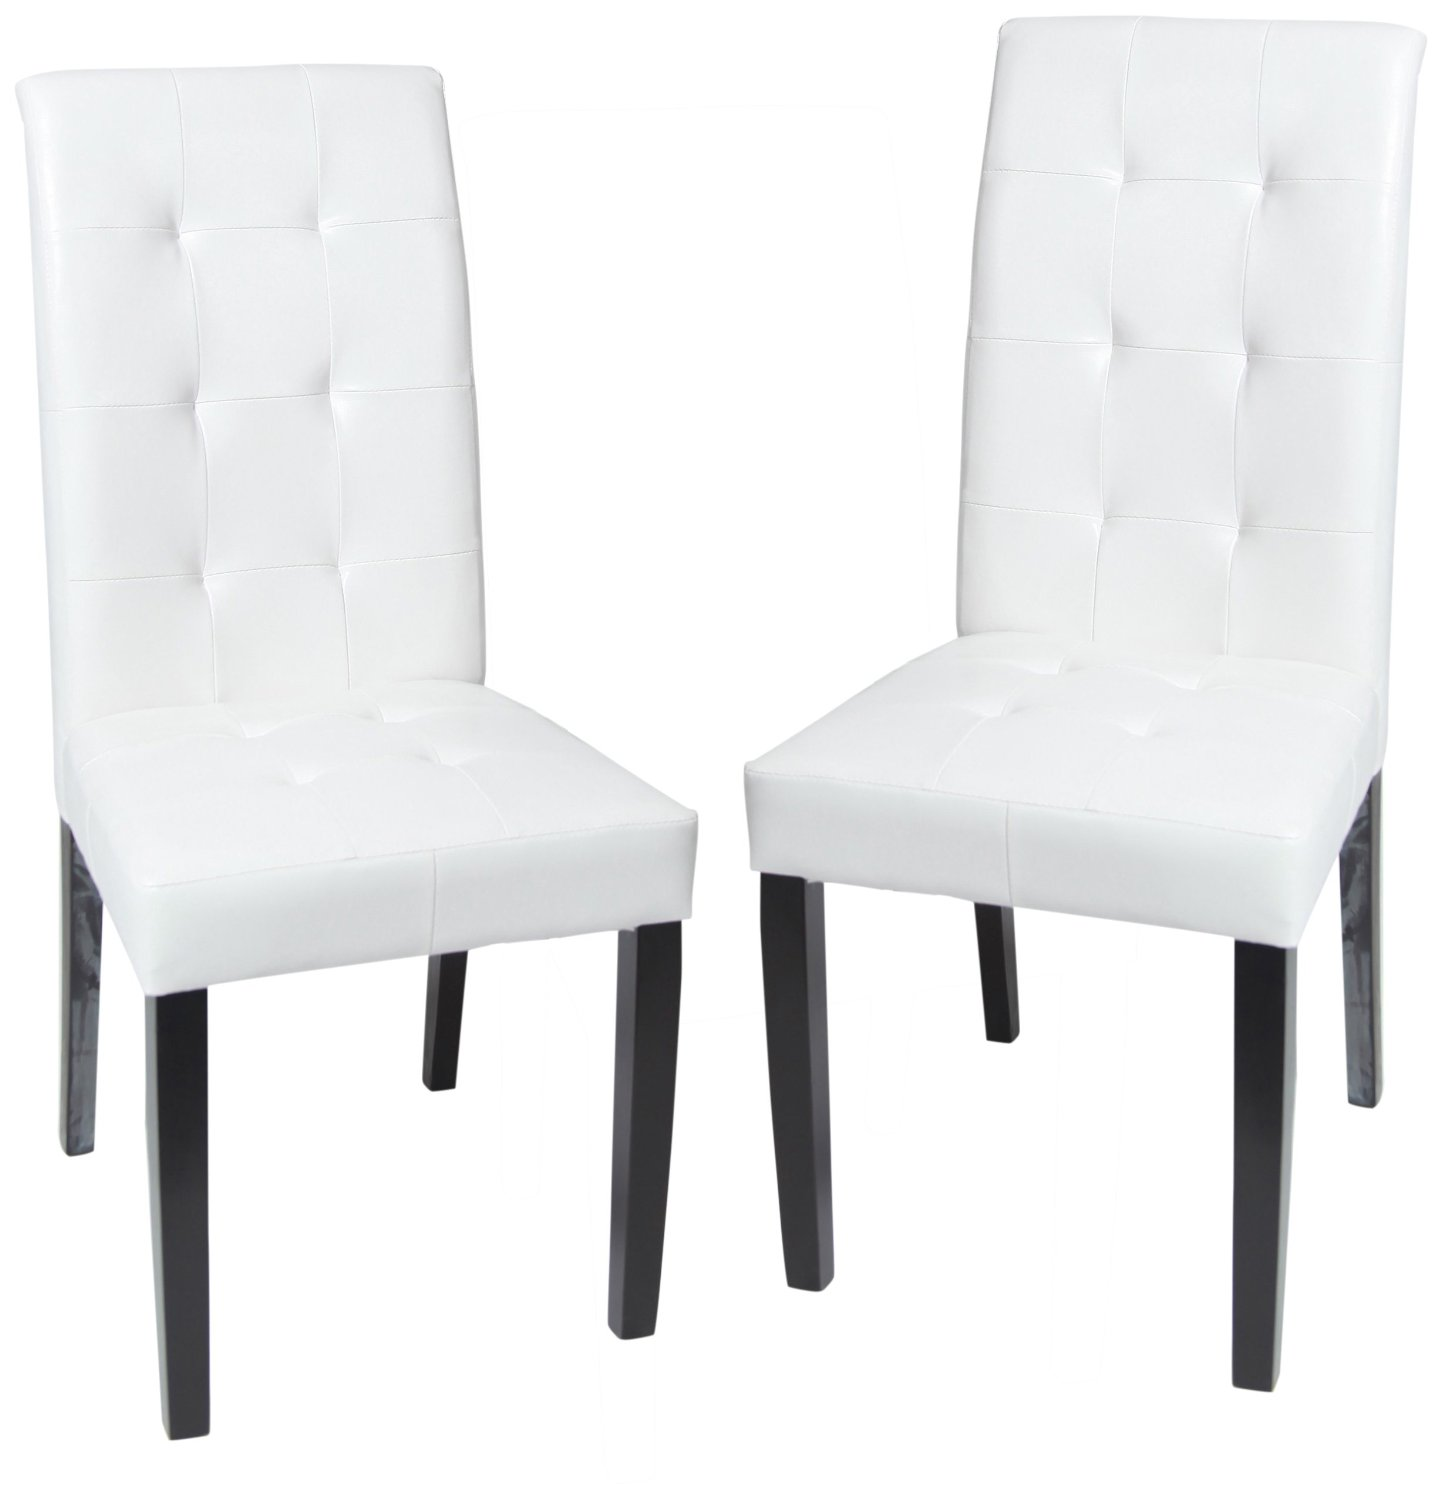 White Upholstered Chair White Upholstered Dining Chair Displaying Infinite